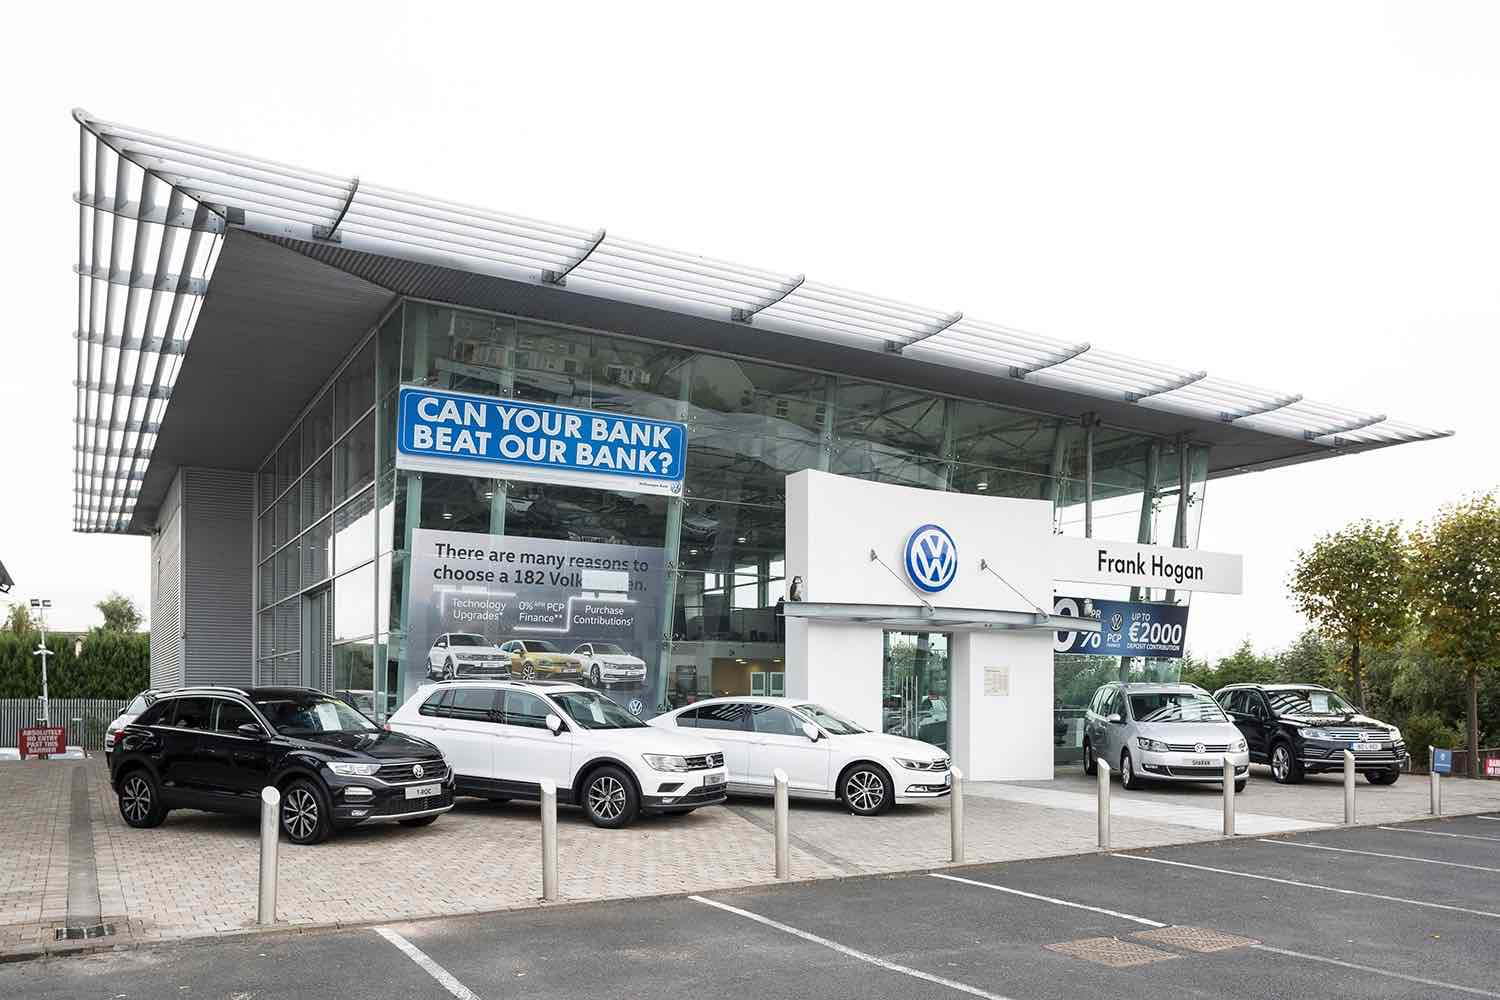 Car News | Subaru Ireland sets up for online sales takeover